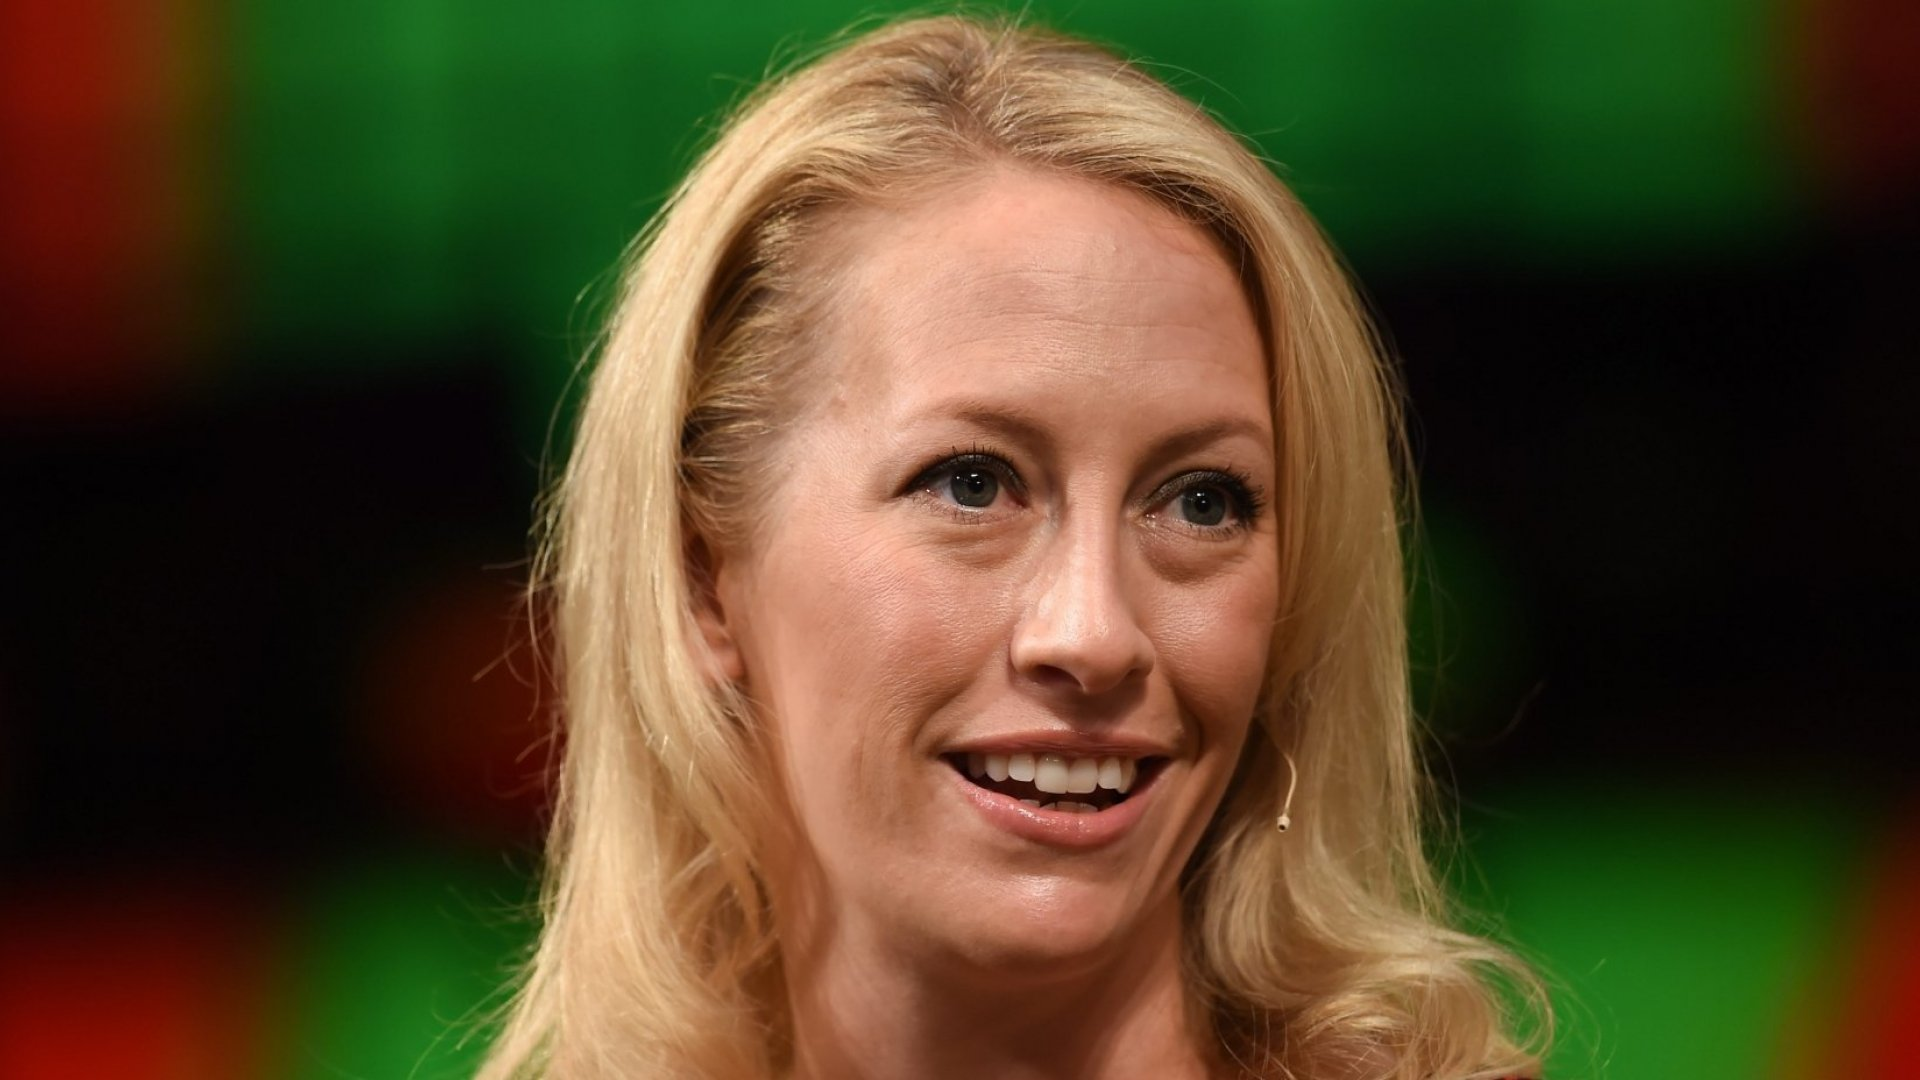 In 1 Sentence, Eventbrite CEO Julia Hartz Reveals She Has Something That Often Leads to Success